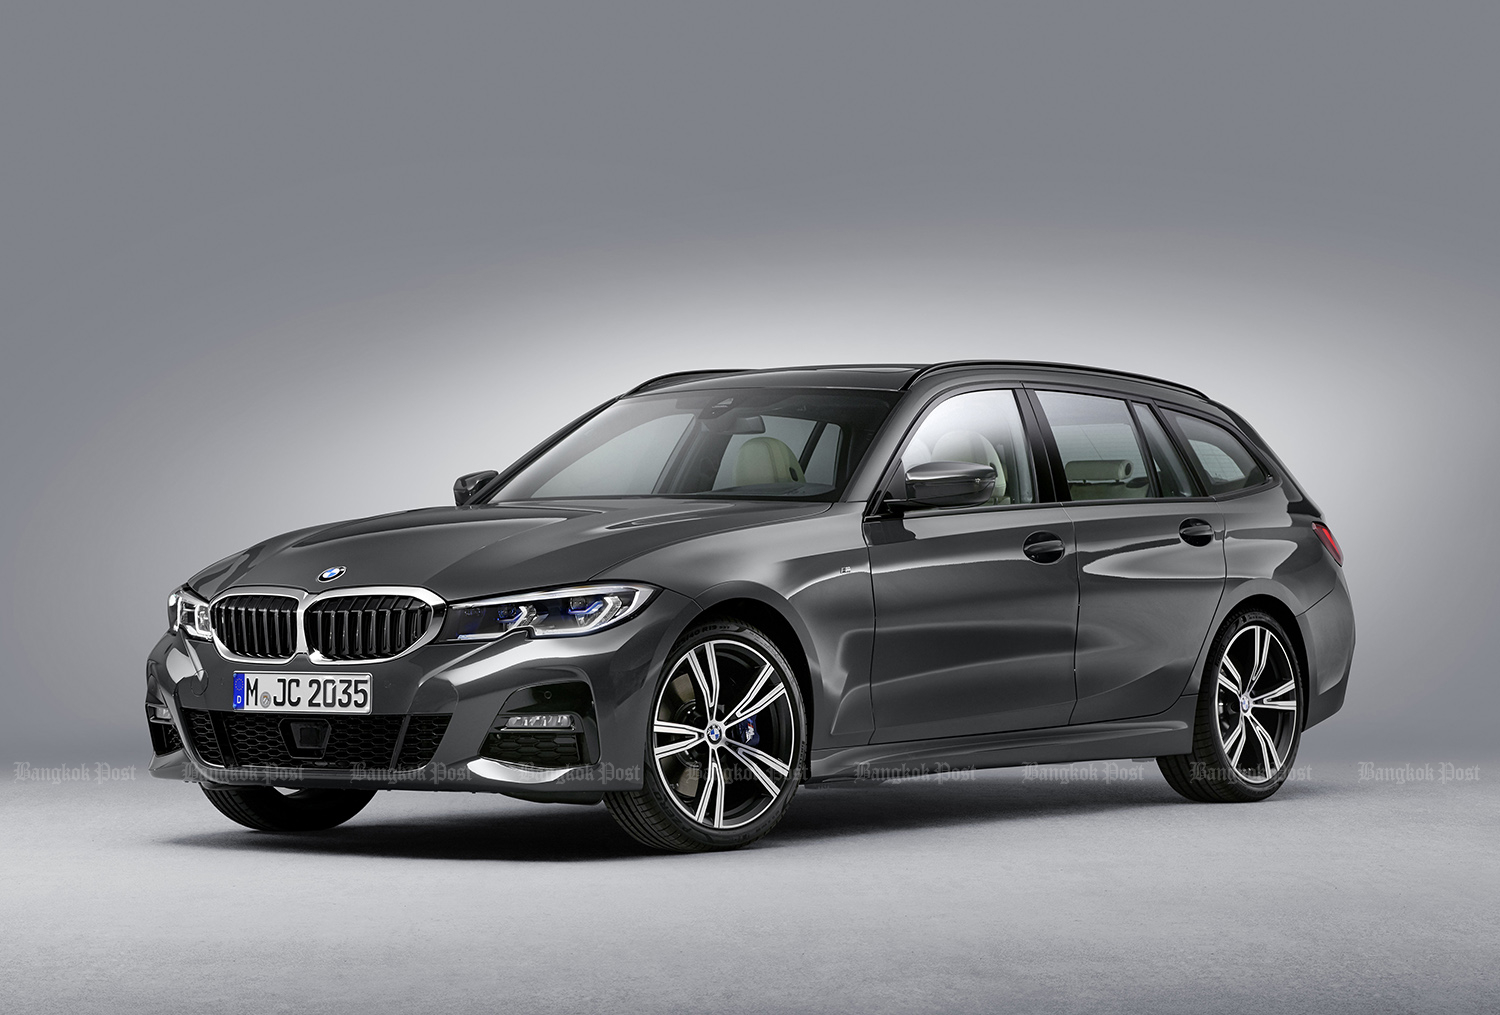 New BMW 3 Series Touring unveiled